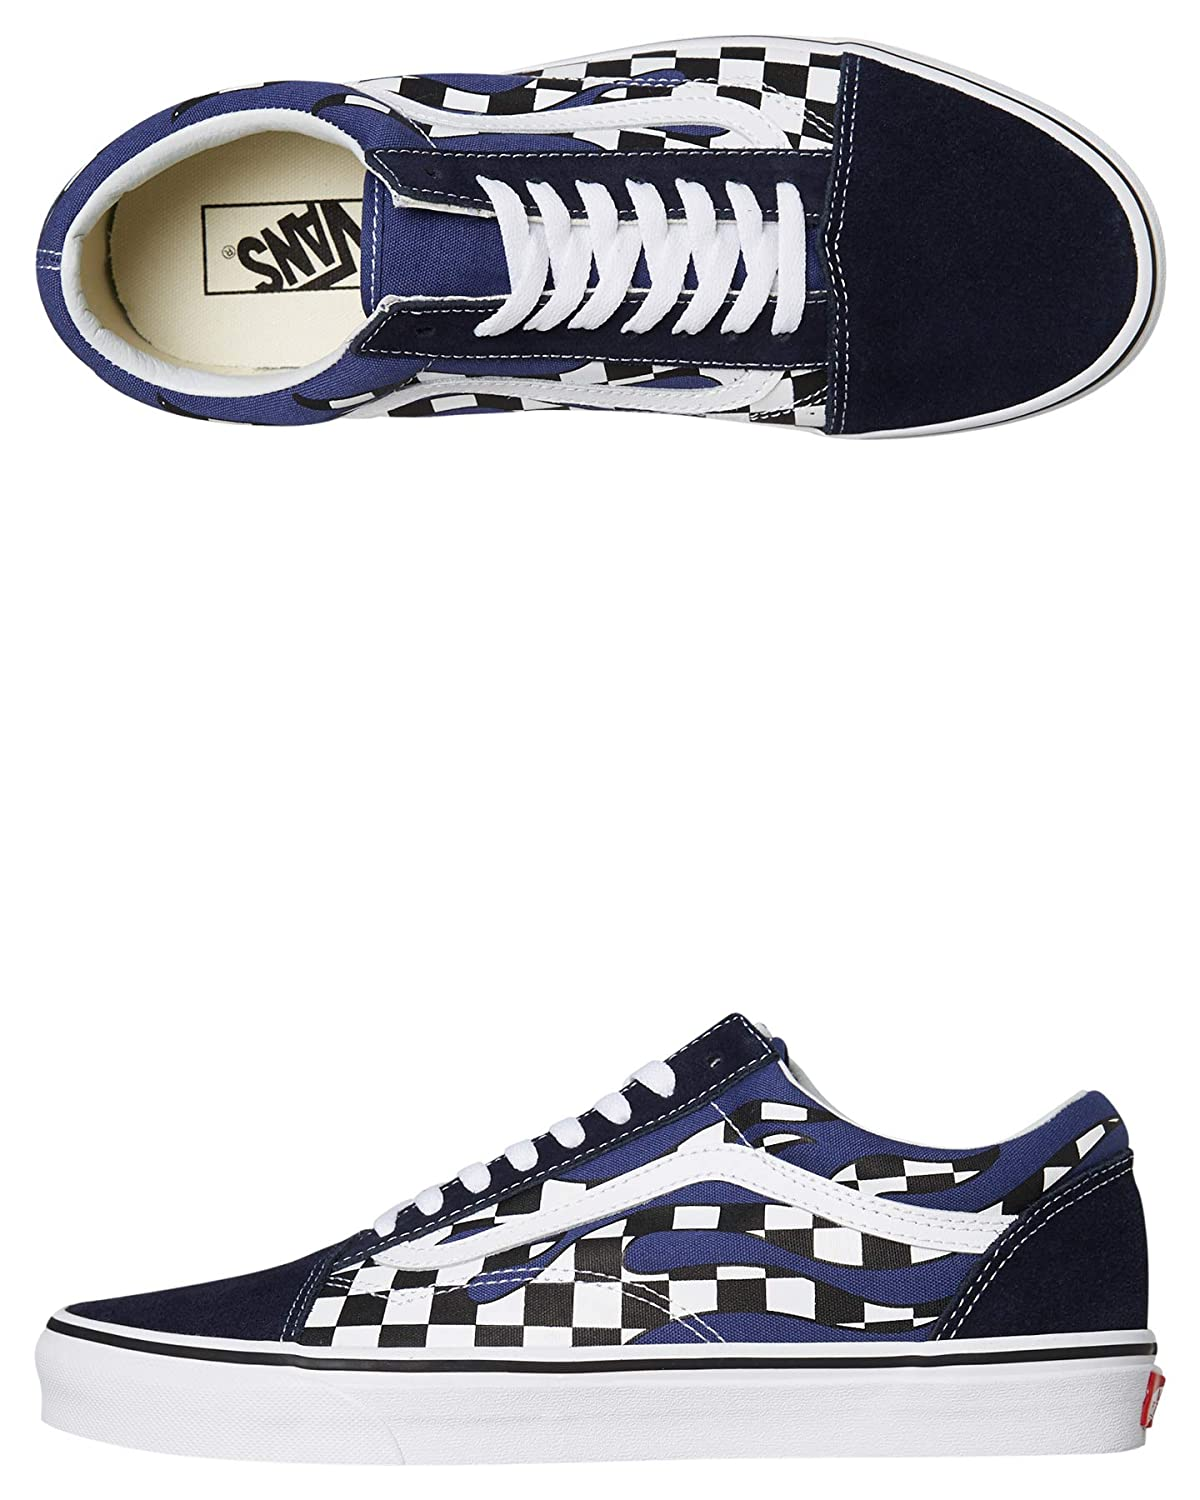 Shoes Old Skateboarding Vans Flame Navy Checker Skool White Blue XuOPkZi